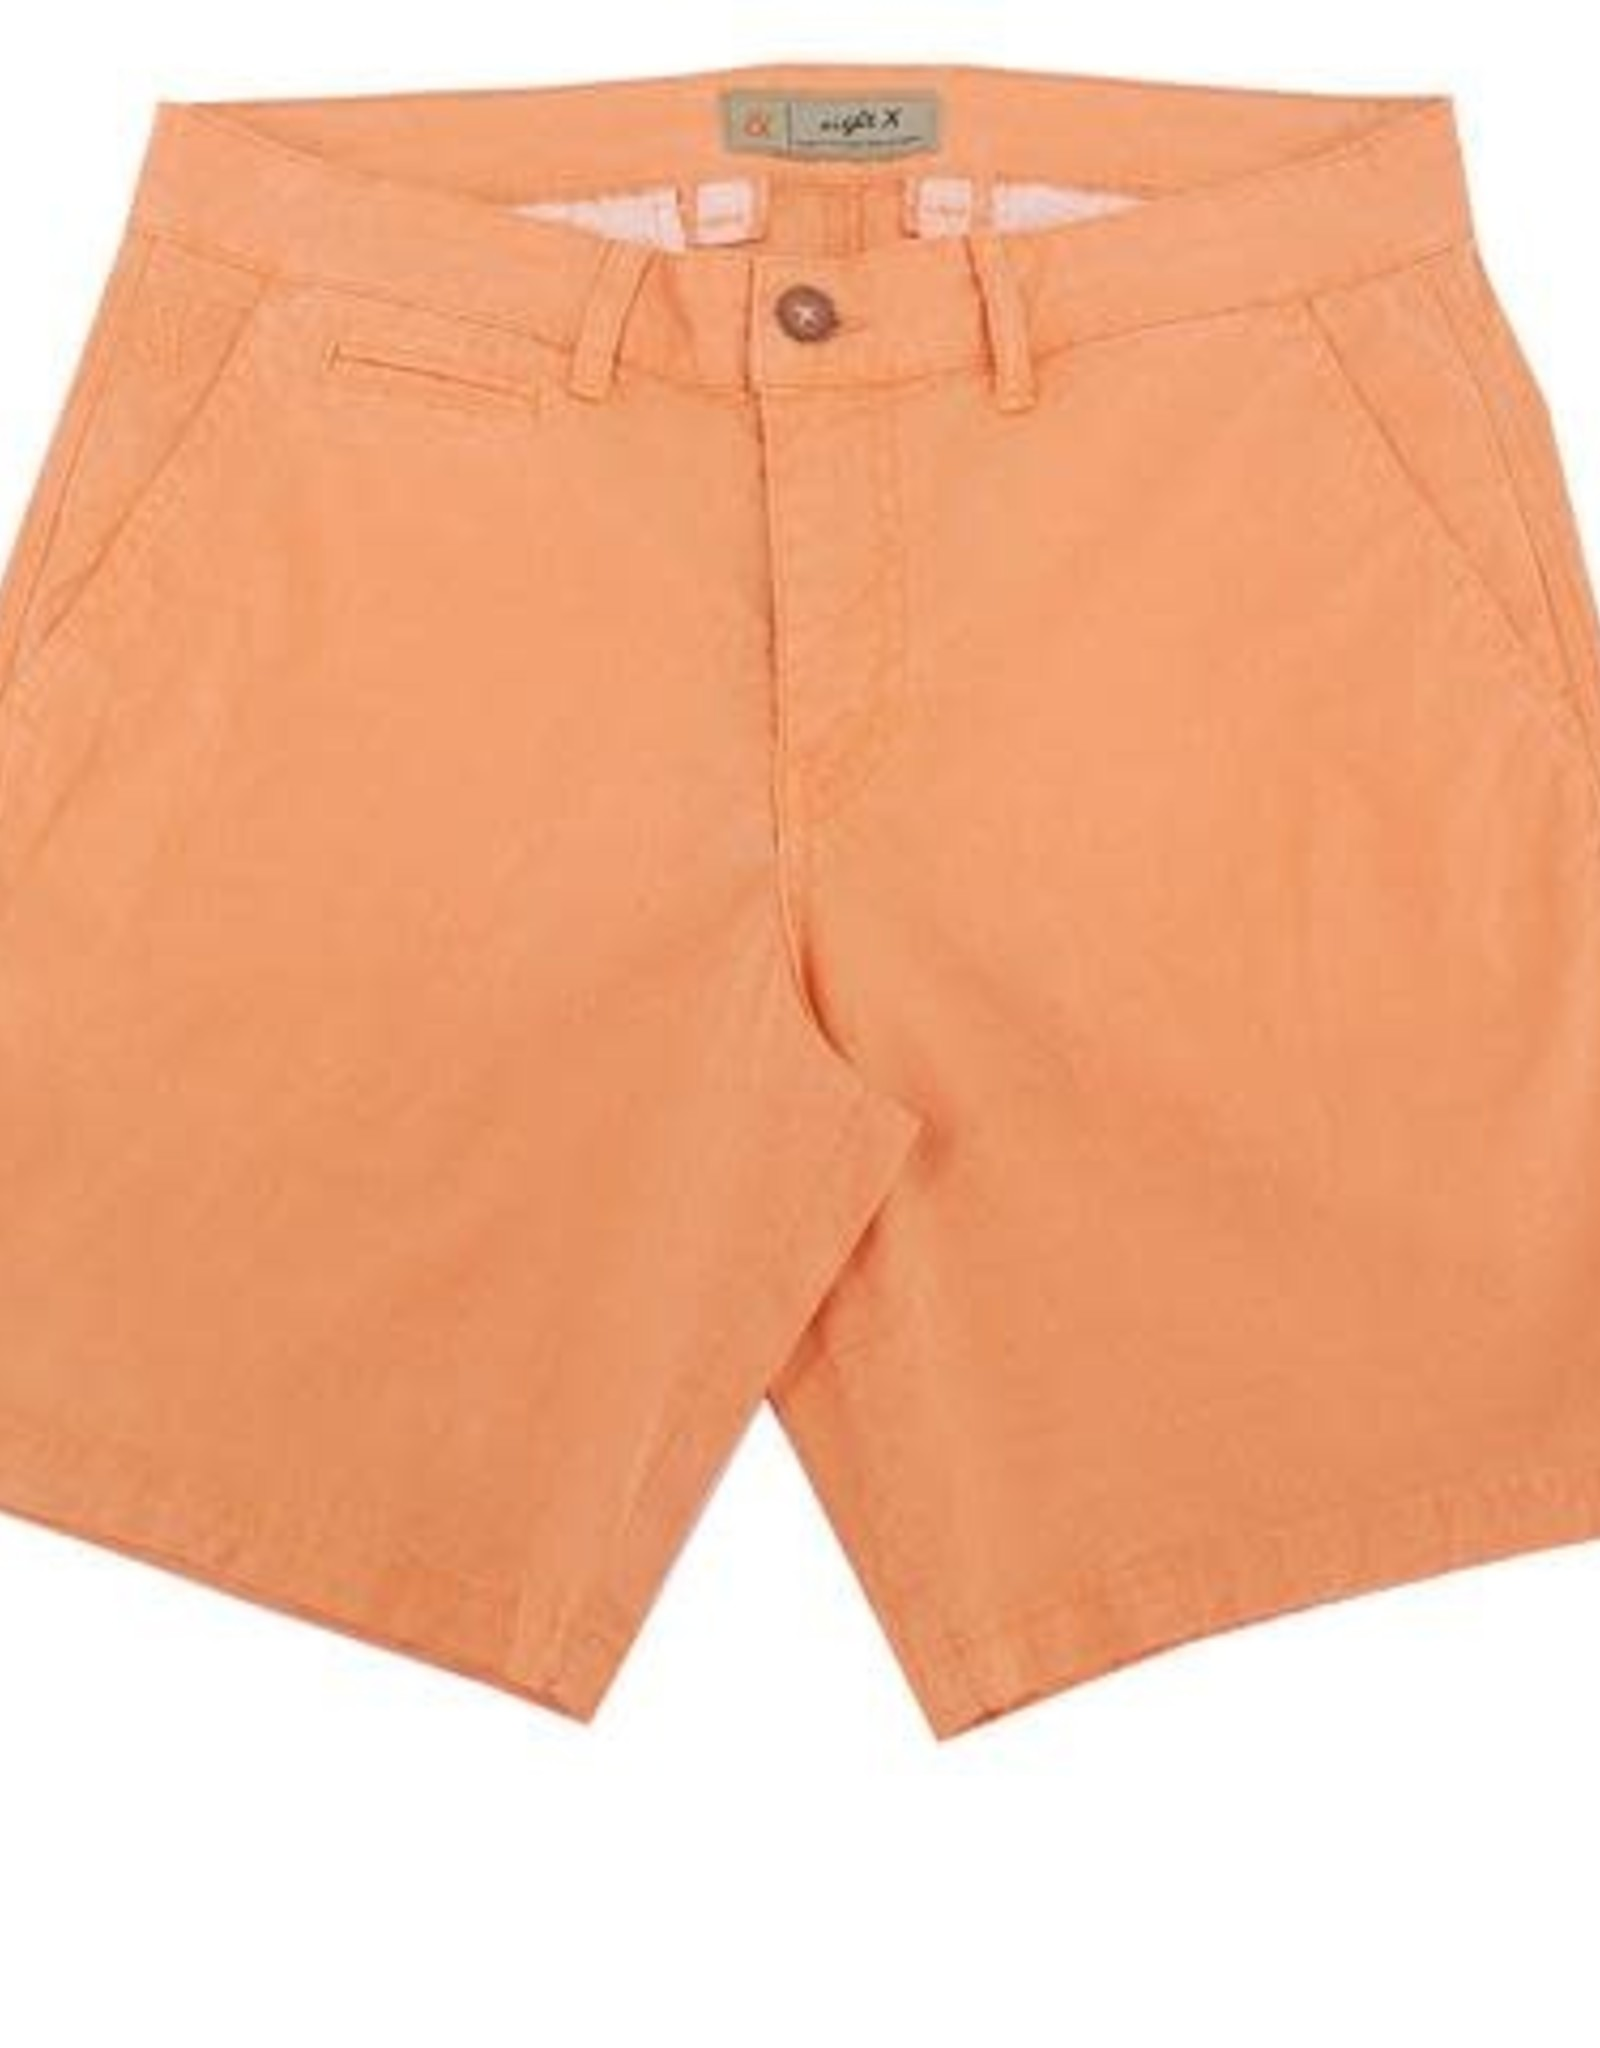 Eight X Slim Fit Shorts